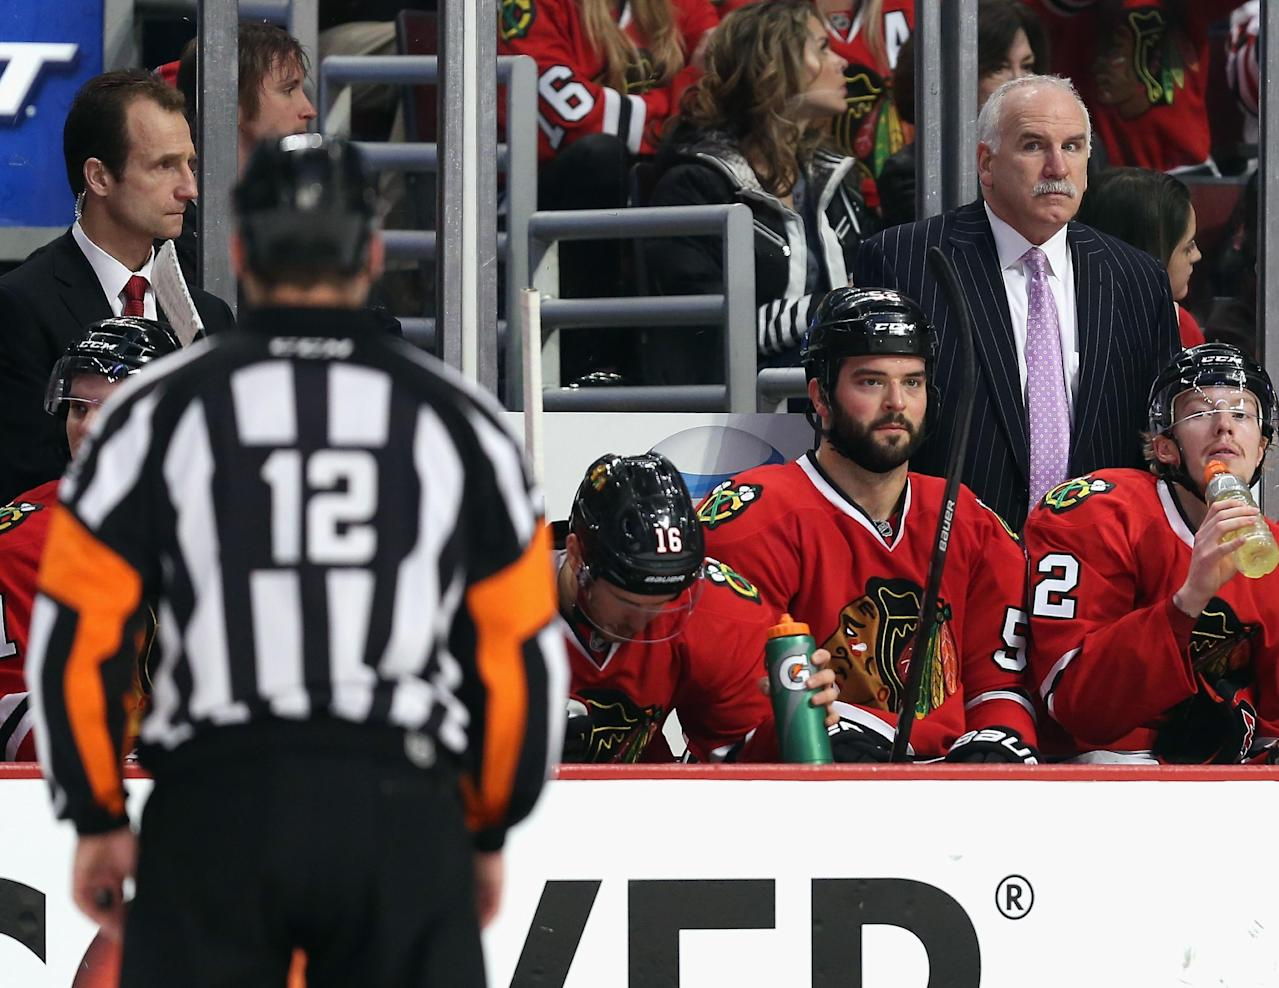 Joel Quenneville fined $25,000 for Michael Jackson impression during Game 1 tirade